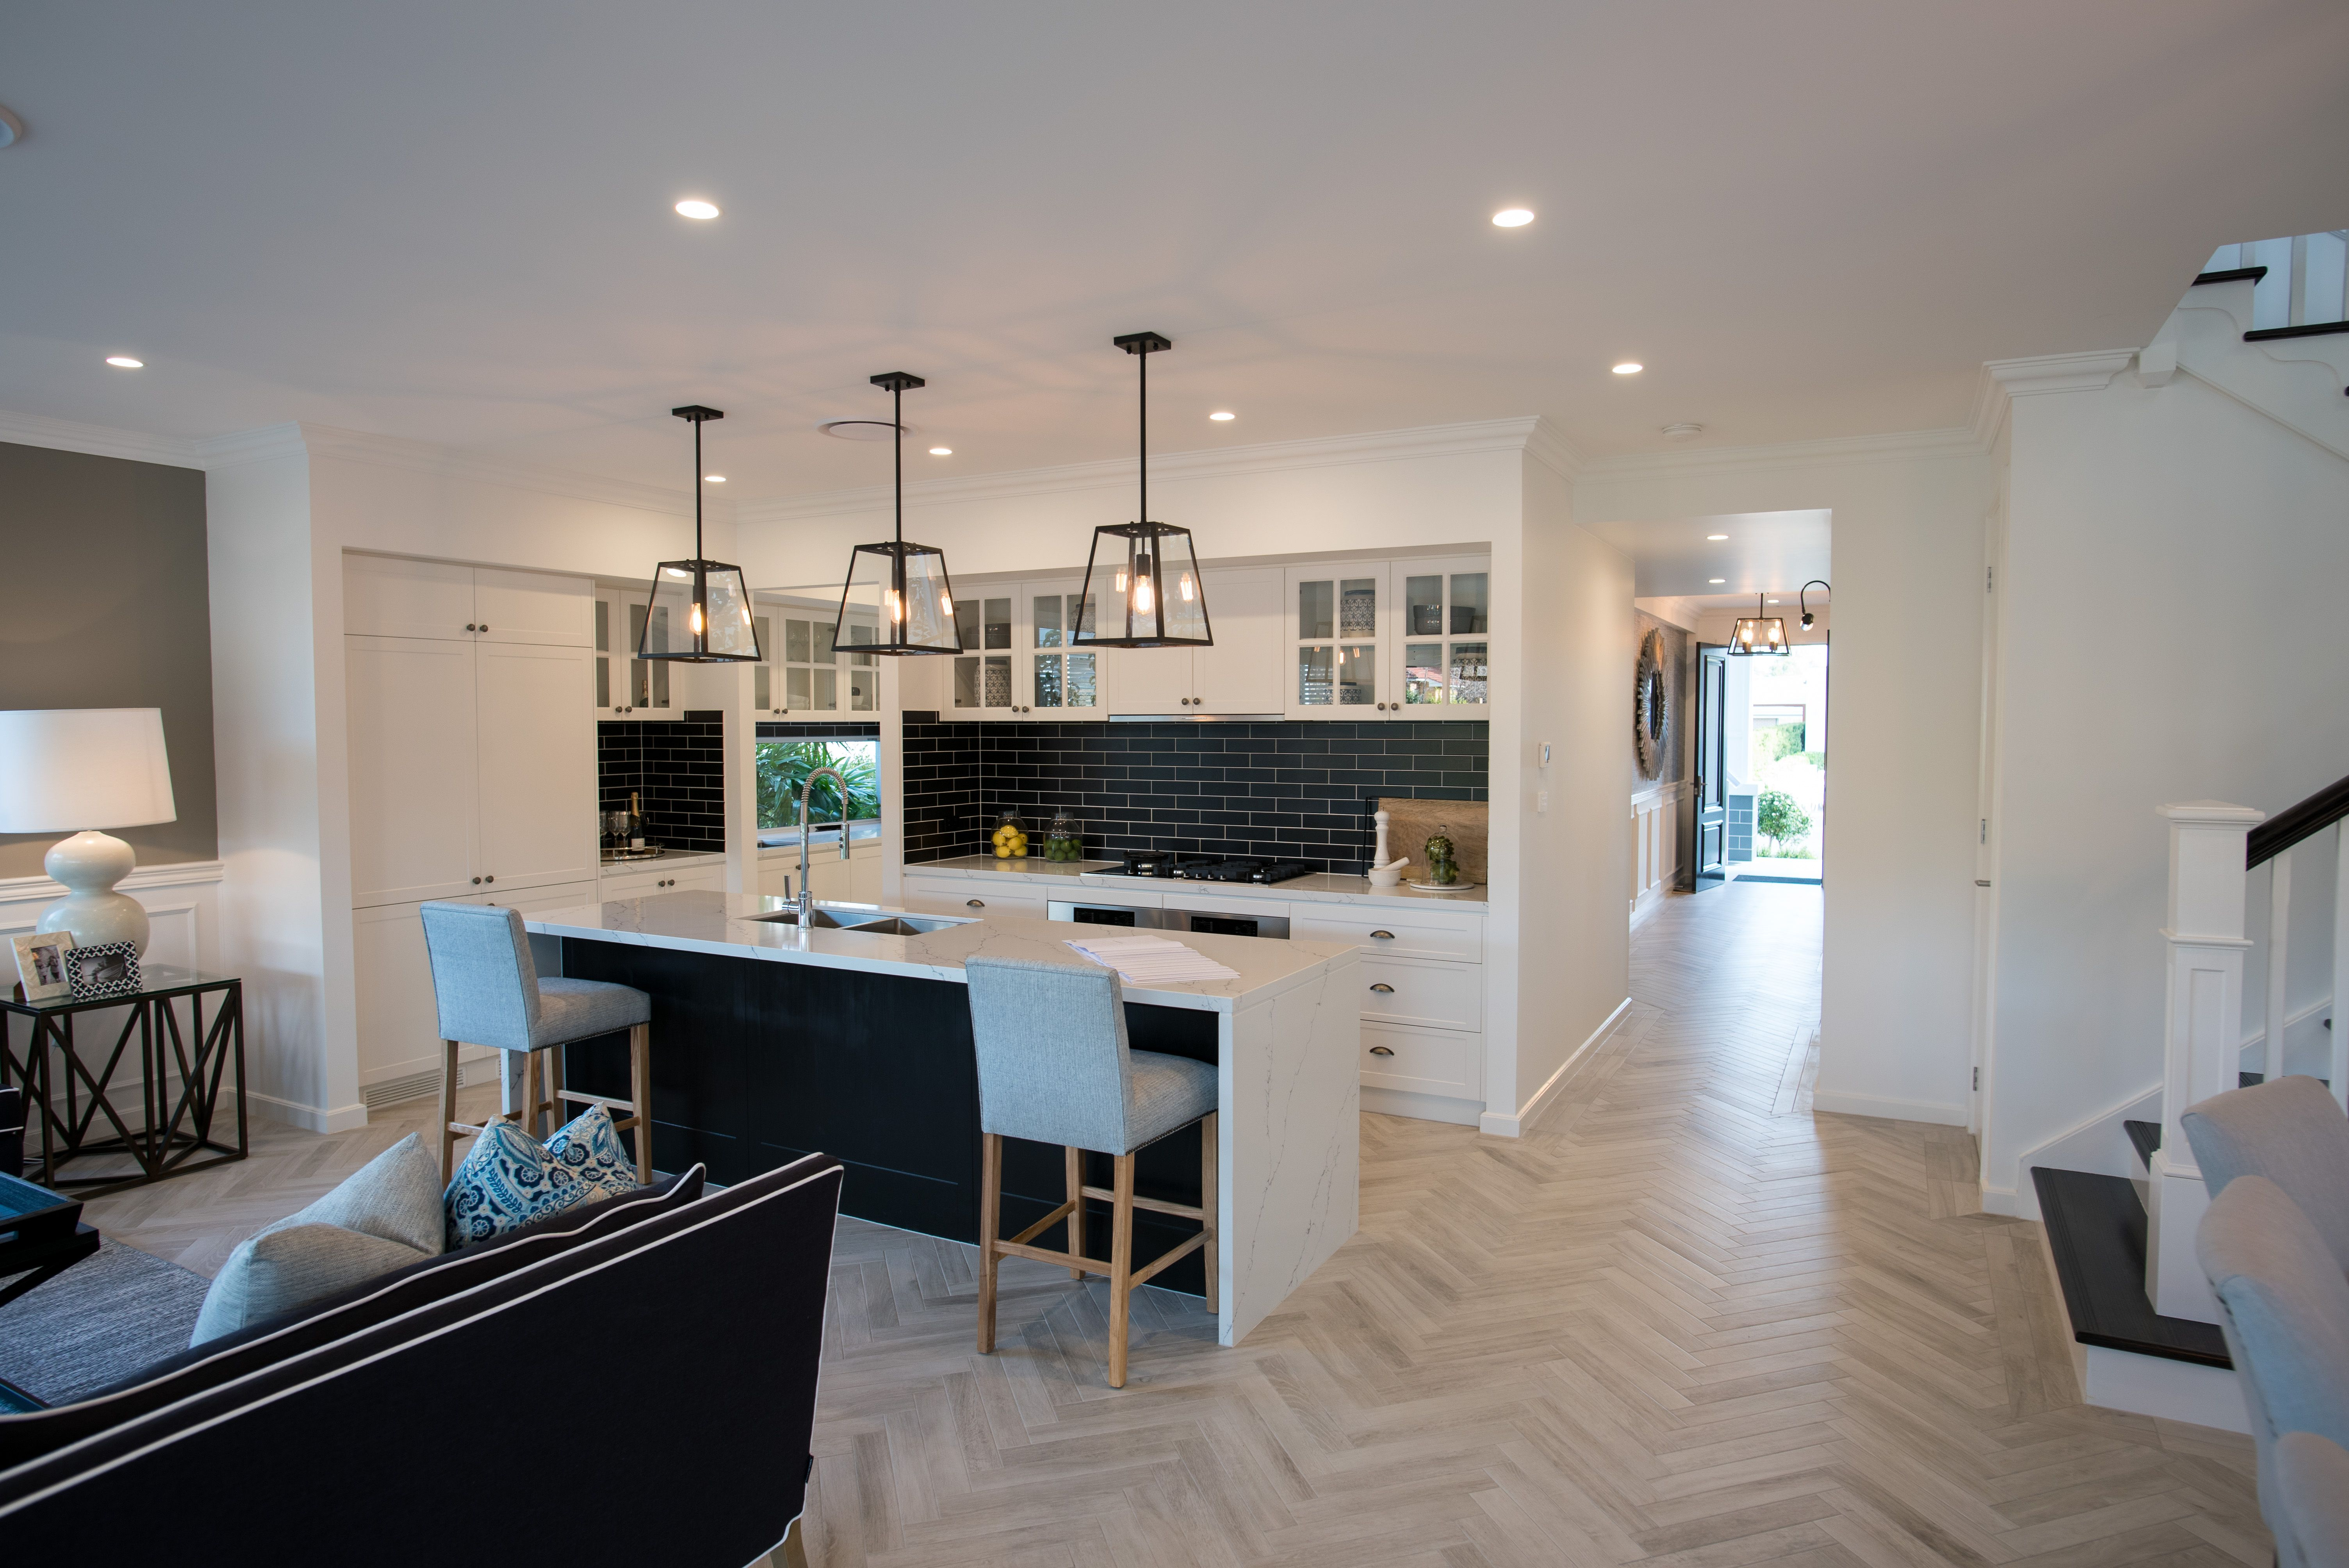 Beautiful Boston 36 Kitchen With Clarendon Homes Kitchen Idea In